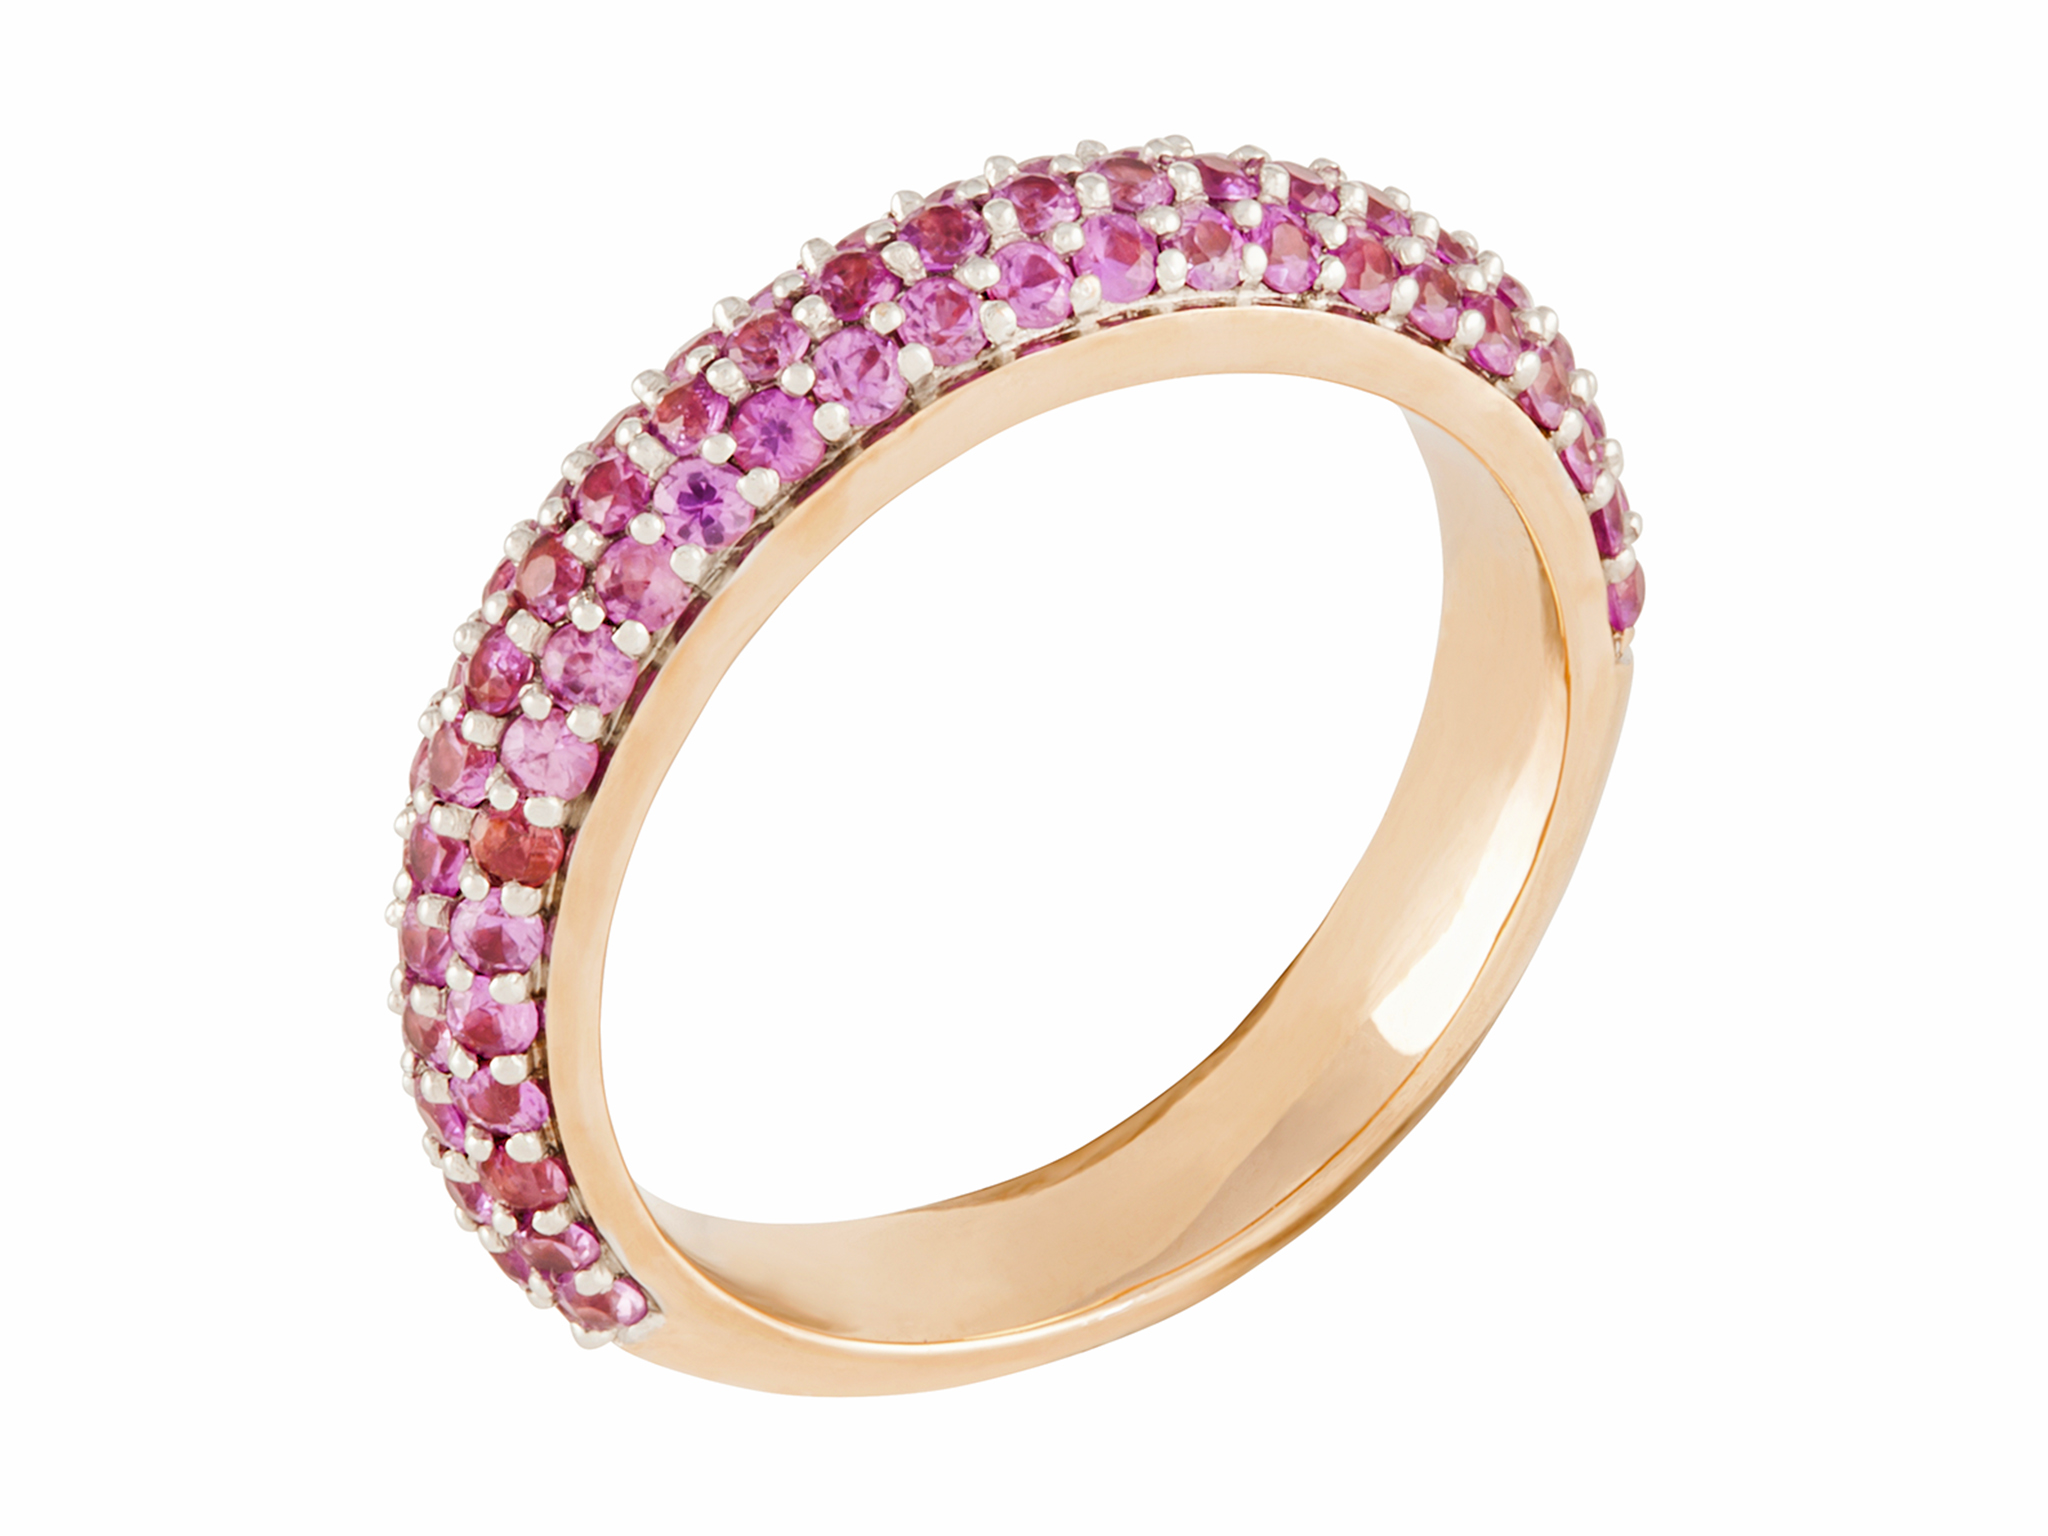 ppsap white rose pink rings products ring wedding sapphire champagne h g gold ct diamond eternity color clarity